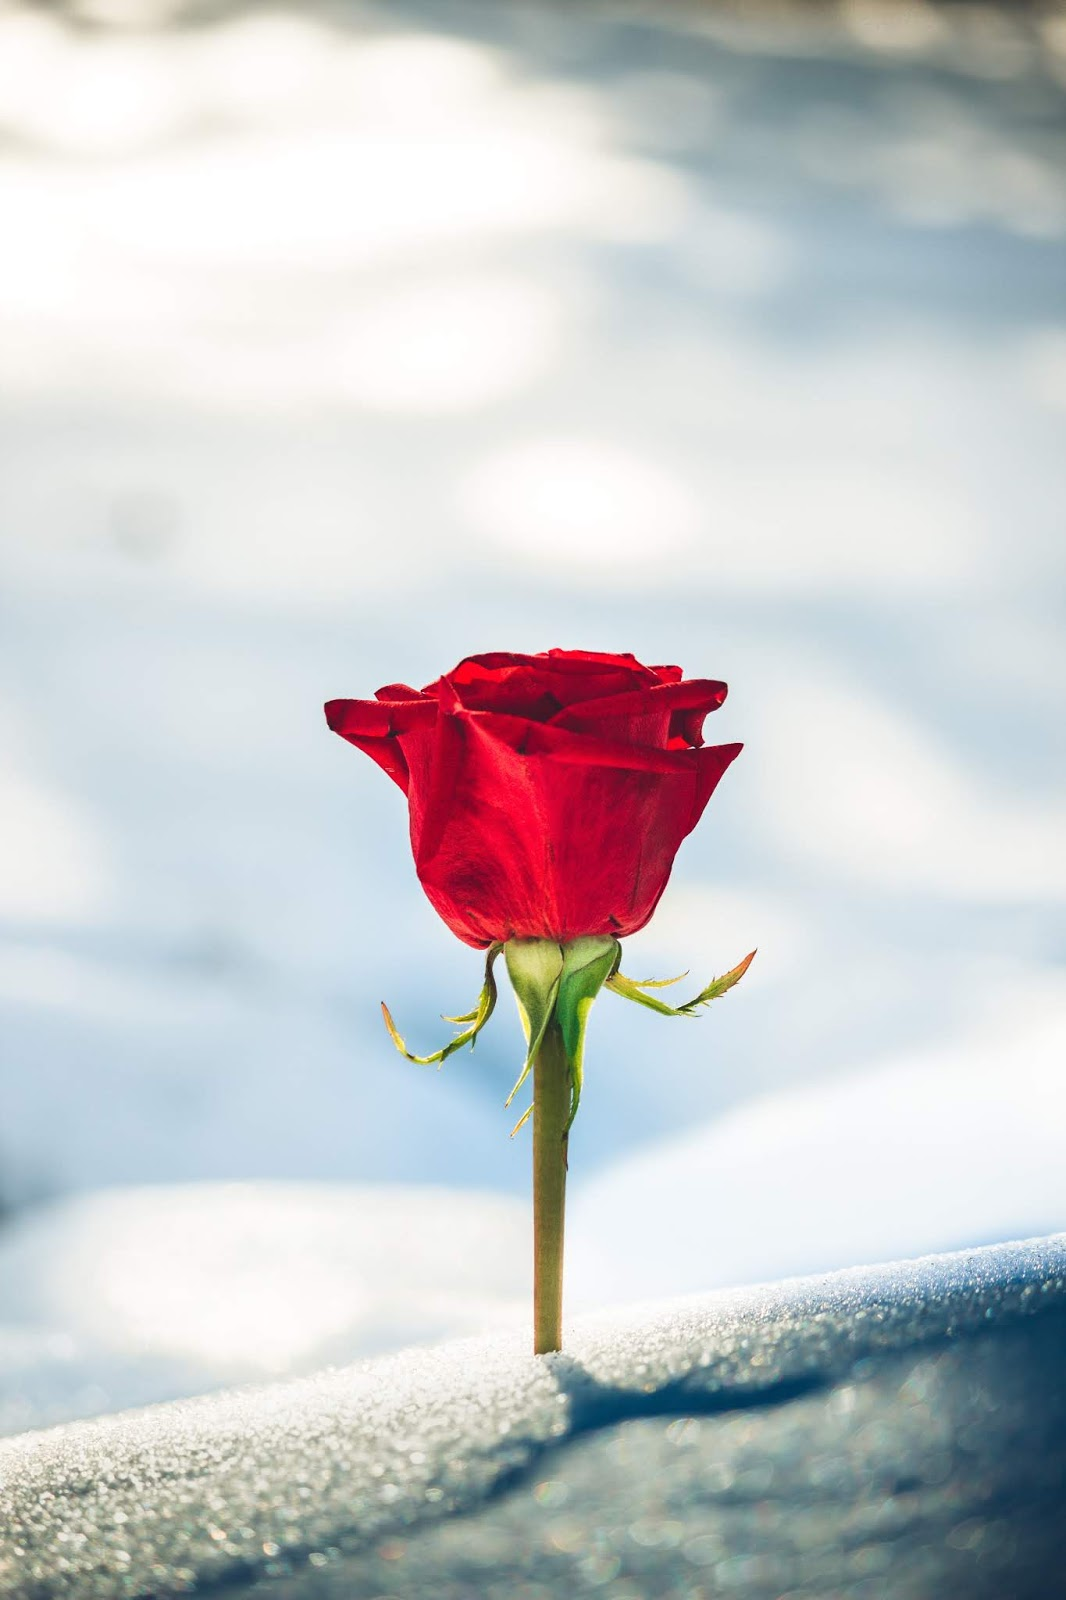 red rose flower in sky view, rose images